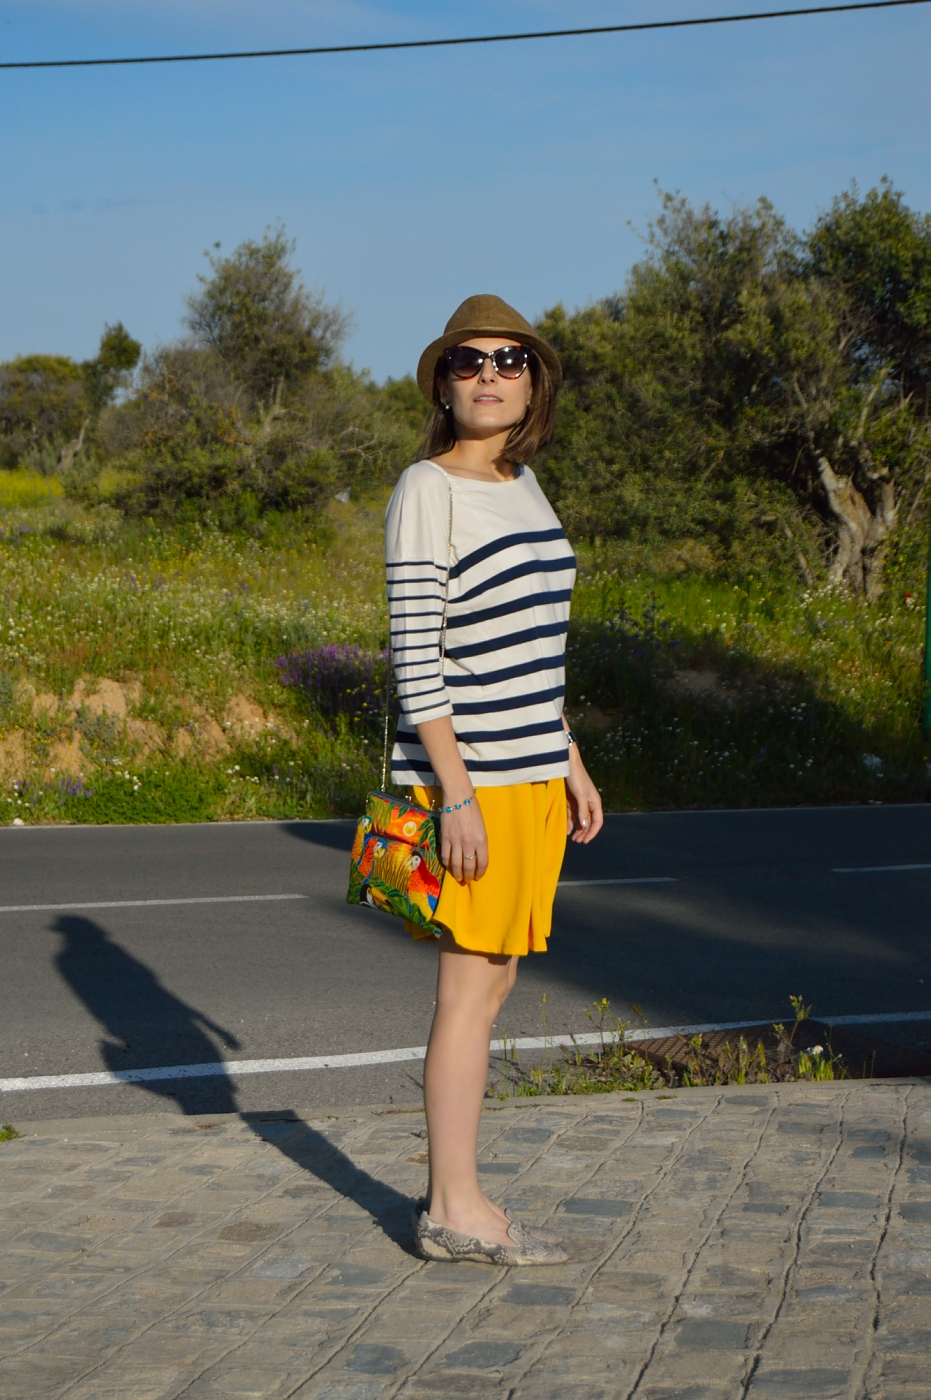 lara-vazquez-mad-lula-style-fashion-blog-girl-shorts-spring-stripes